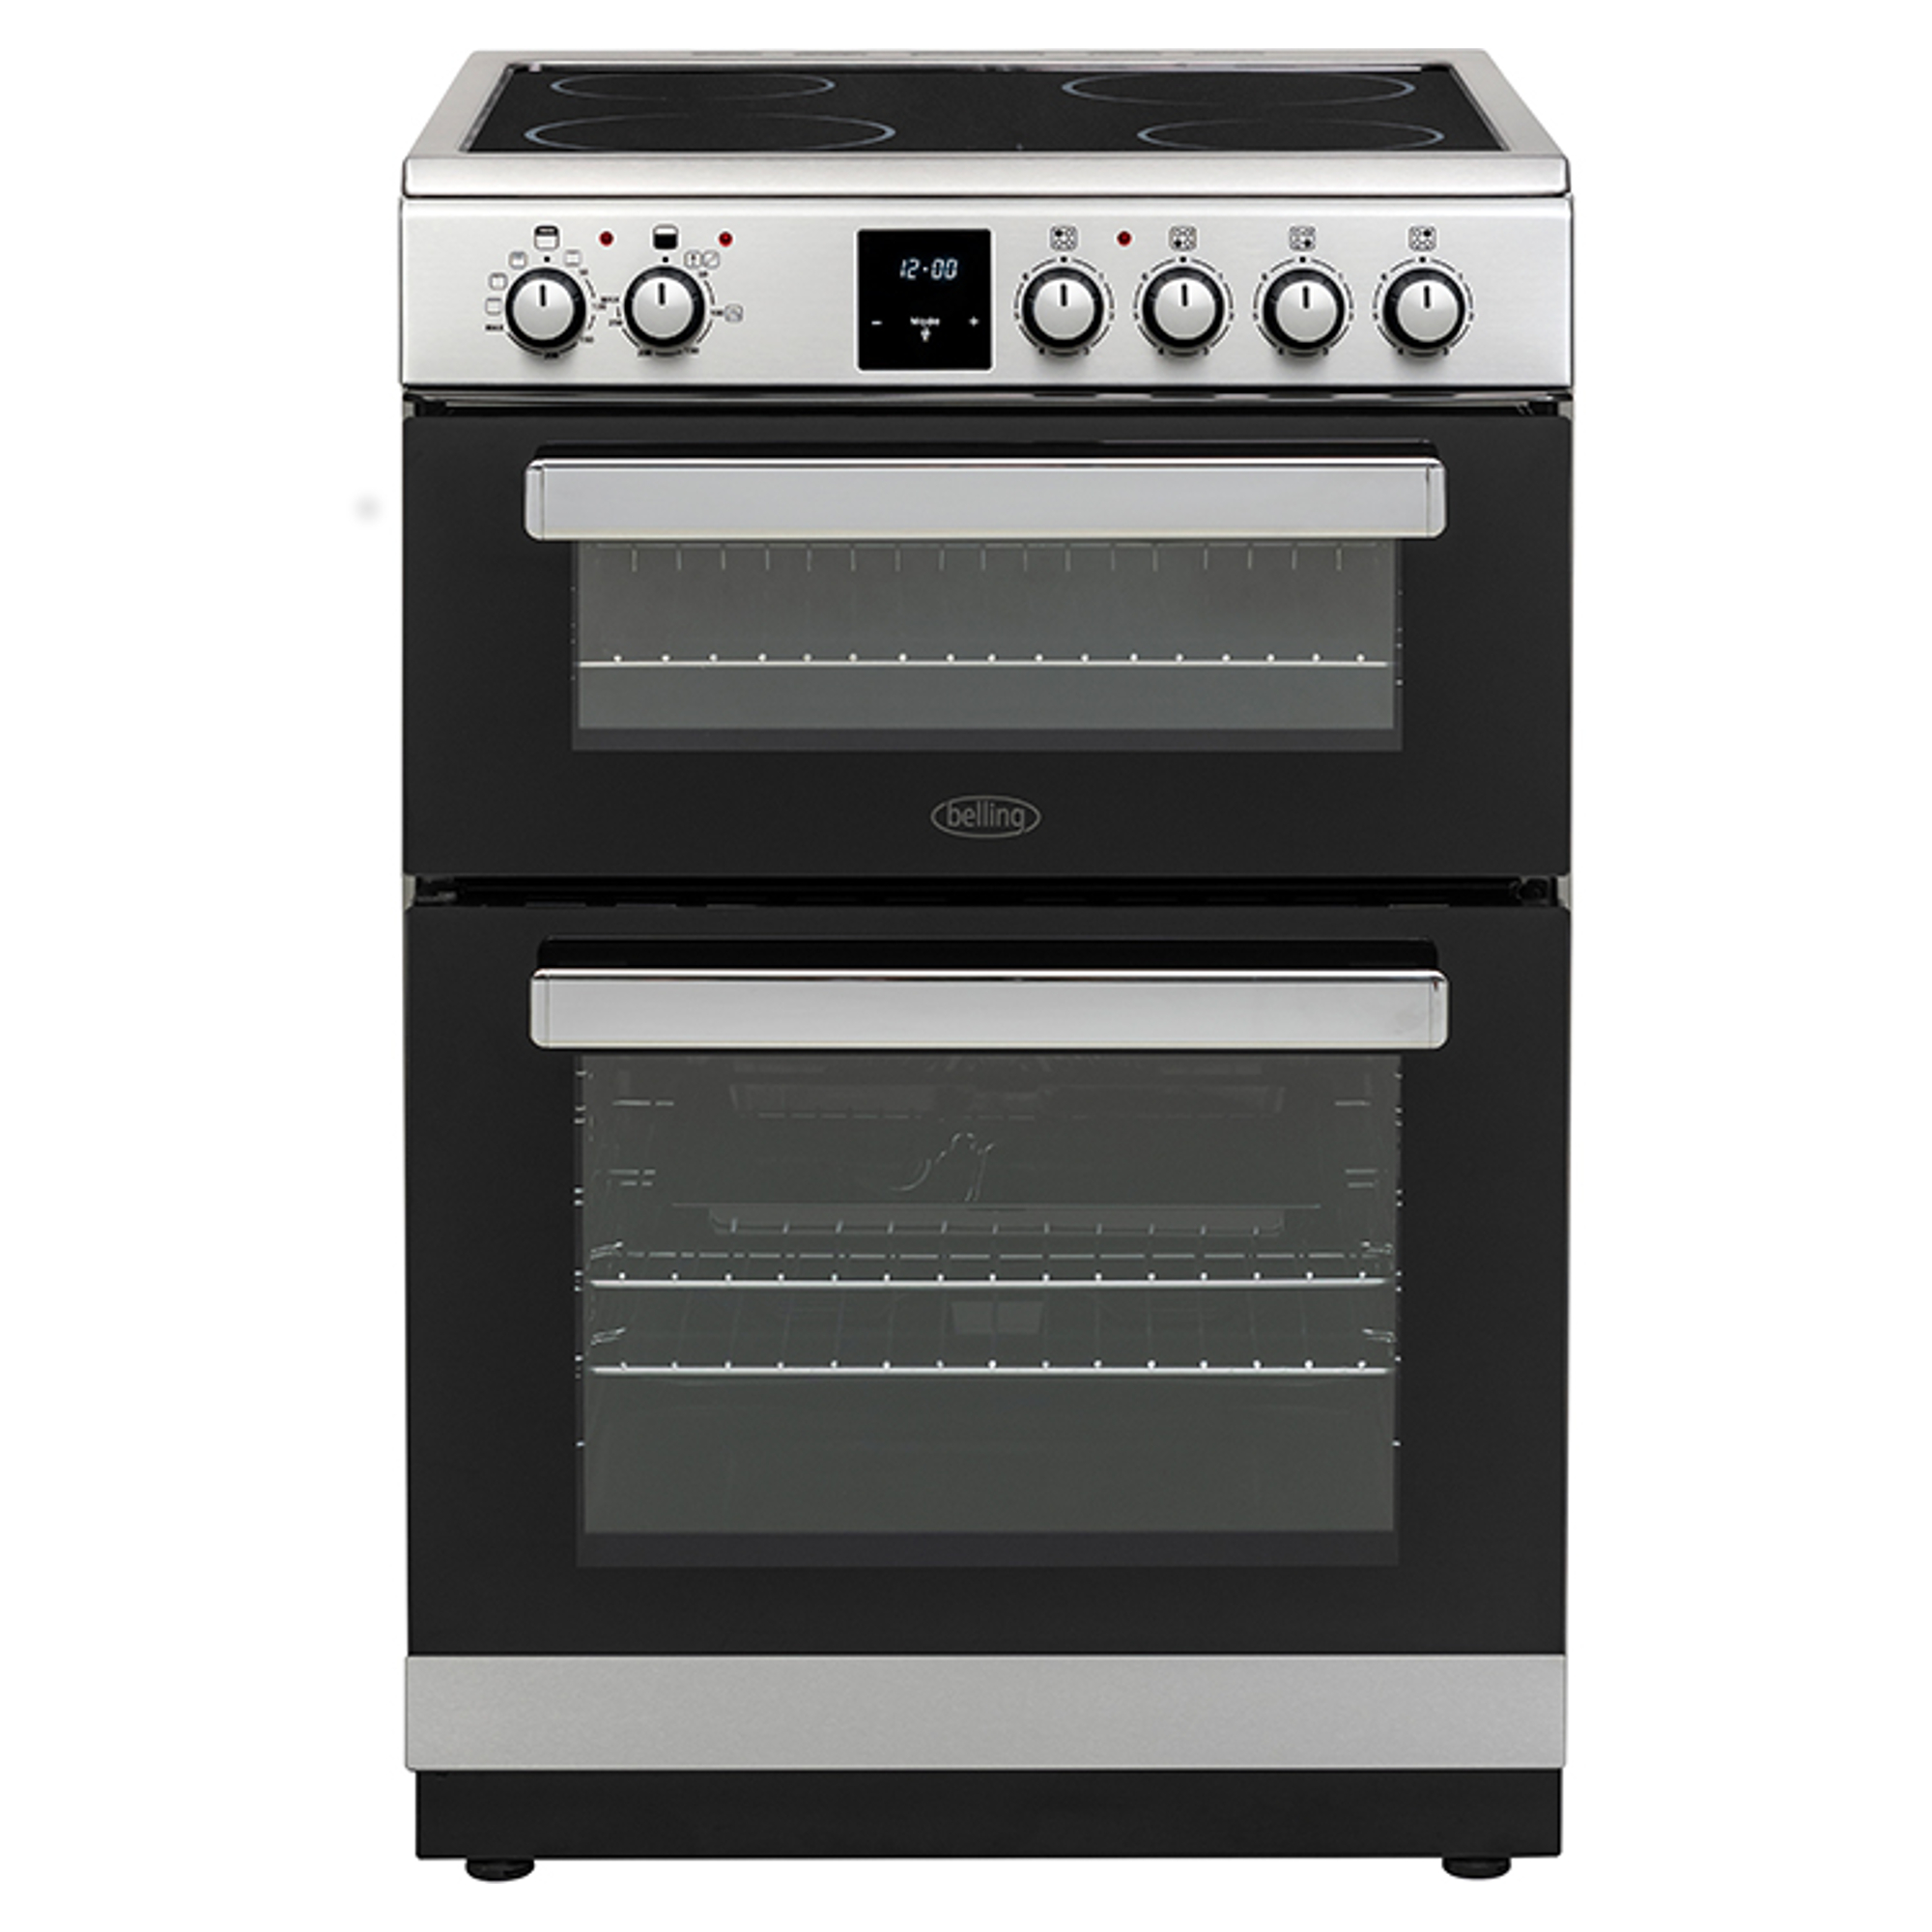 Belling Fse608dpc Electric Cooker With Ceramic Hob Hughes